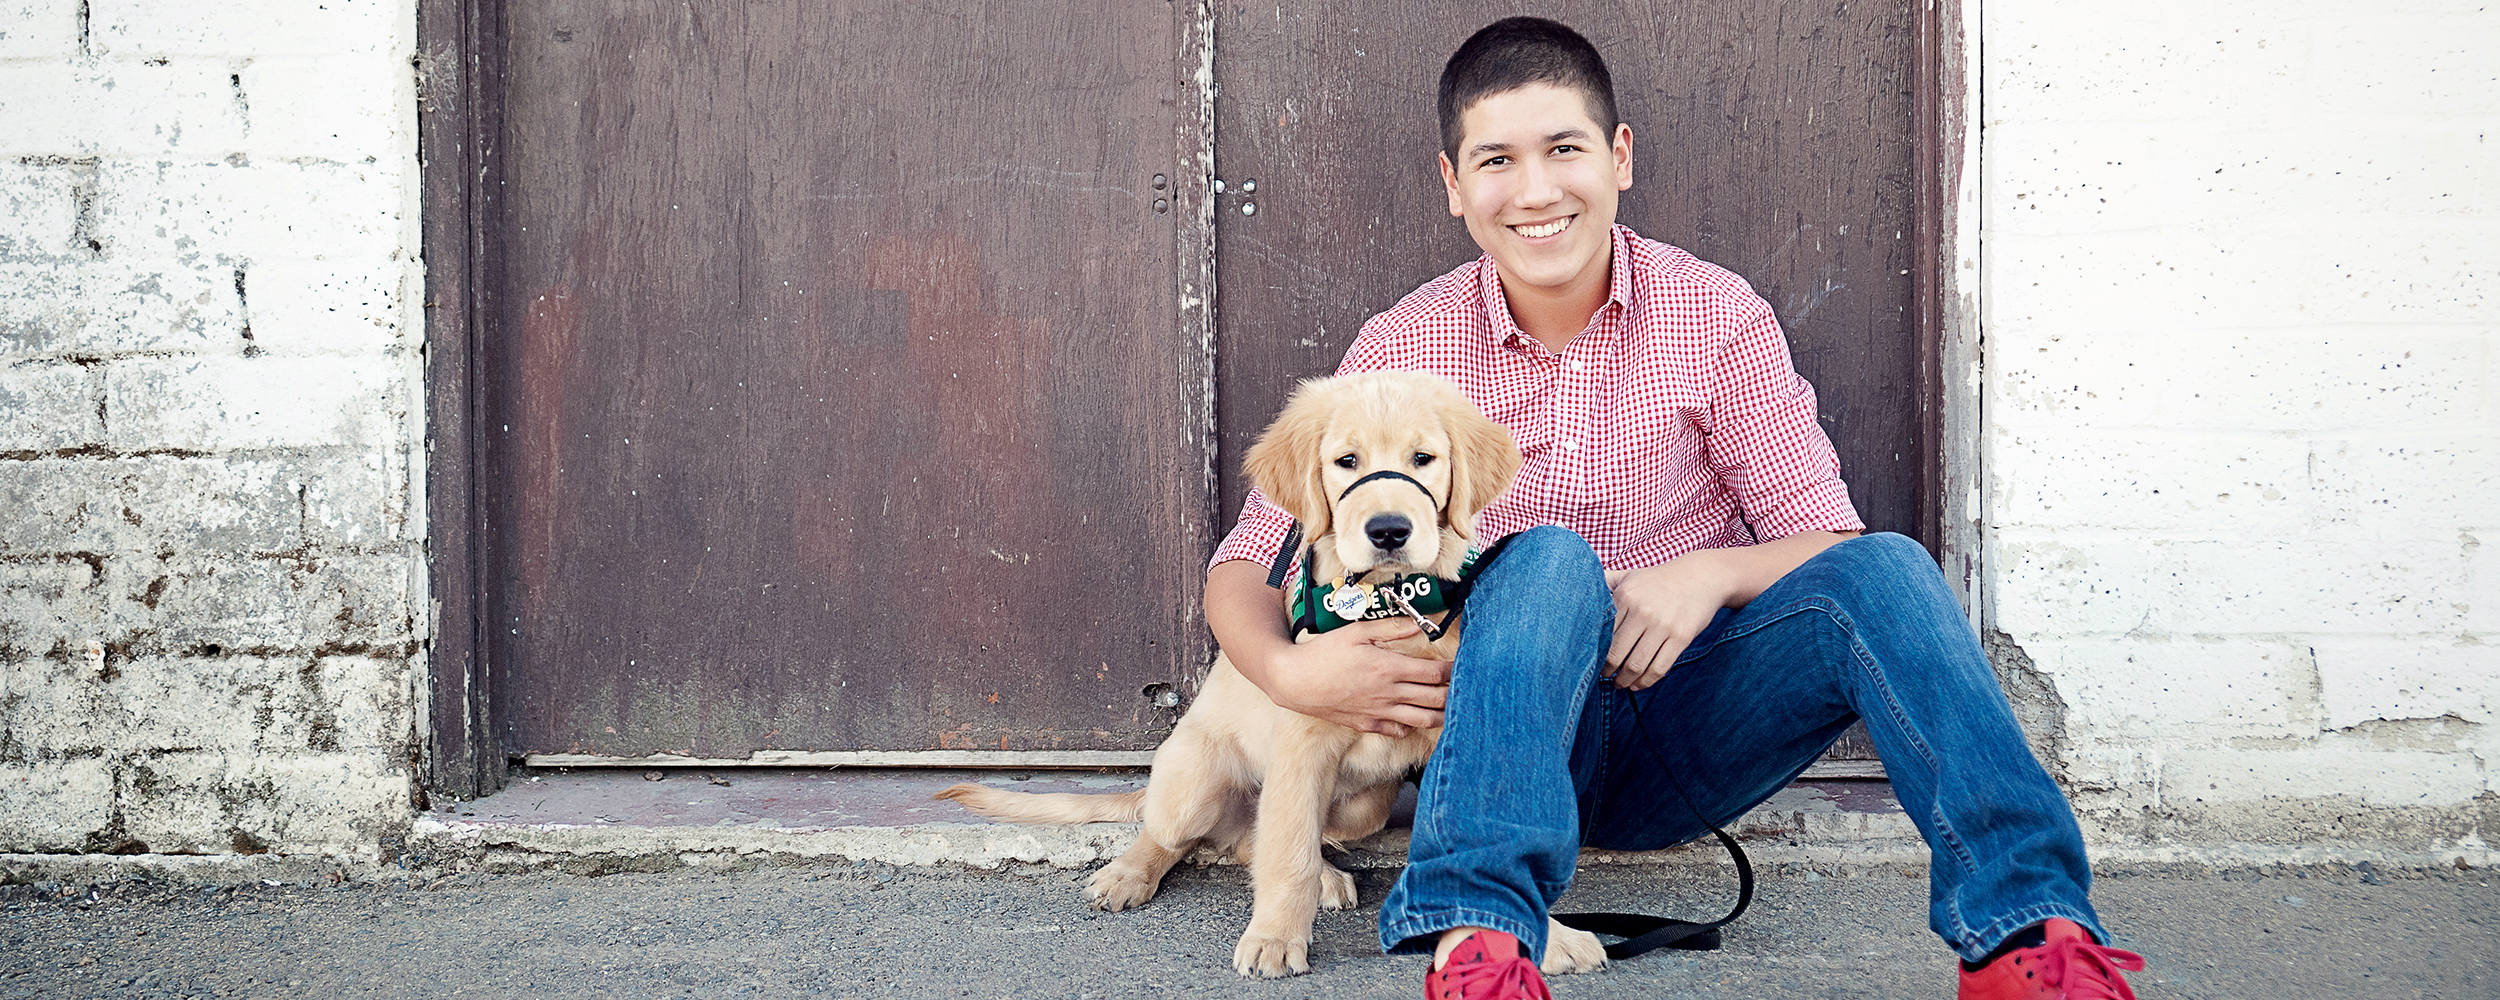 A teenage male puppy raiser smiles while sitting with his young Golden Retriever guide dog puppy